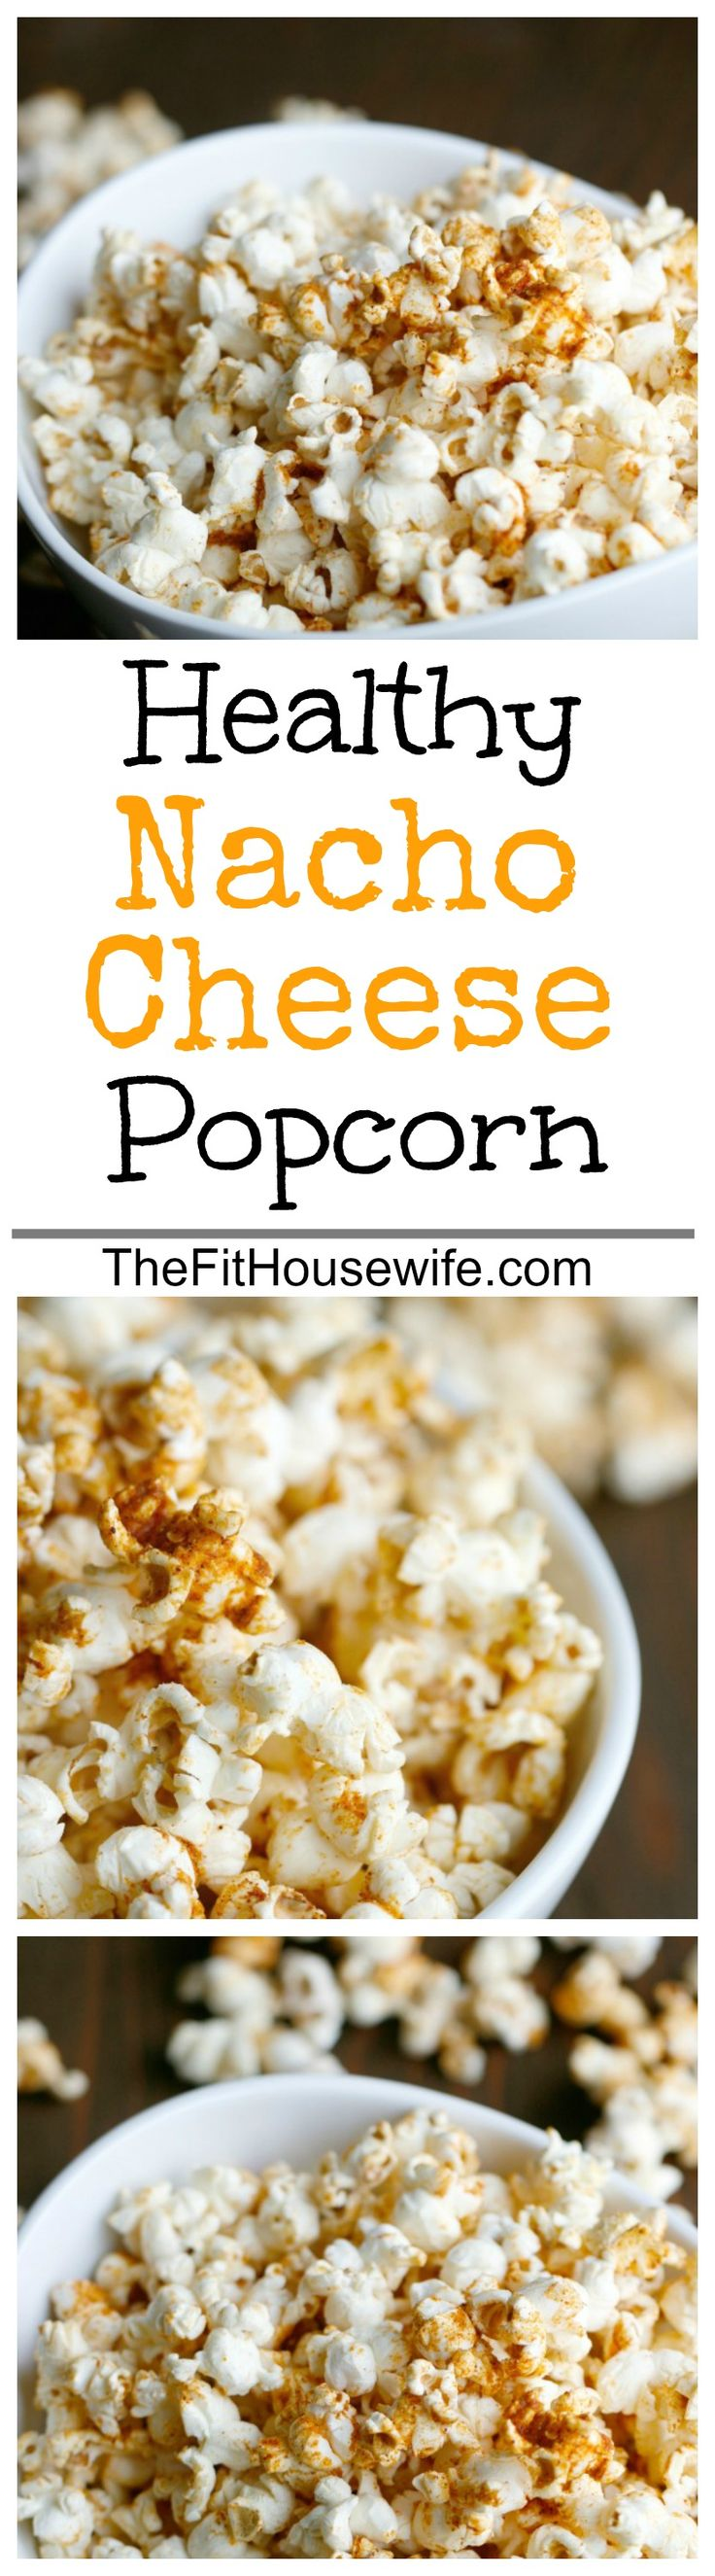 This Nacho Cheese Popcorn is a healthy and delicious way to enjoy popcorn! Did you know that popcorn is one of my favourite snacks? I could eat it all the time!! It's actually very low in calories, so you can eat a lot at a time, which is perfect for family movie night! Some of …